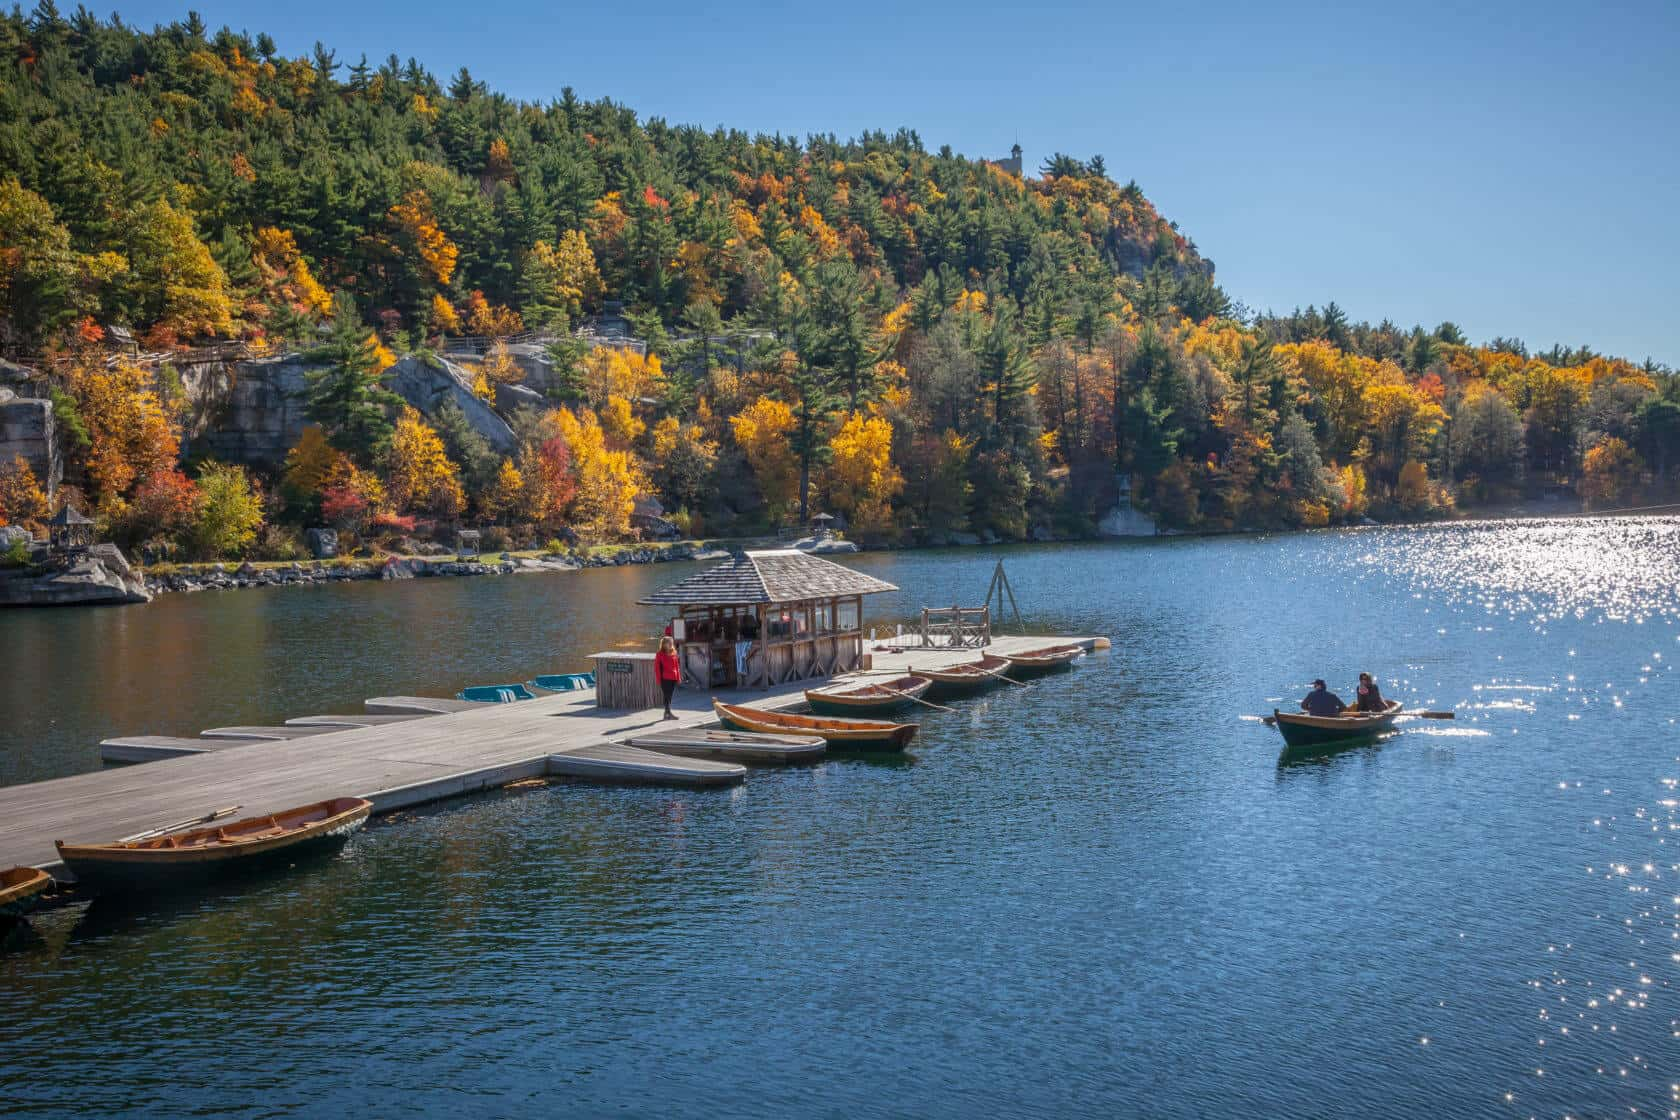 Fall Foliage at the Mohonk Boat Dock